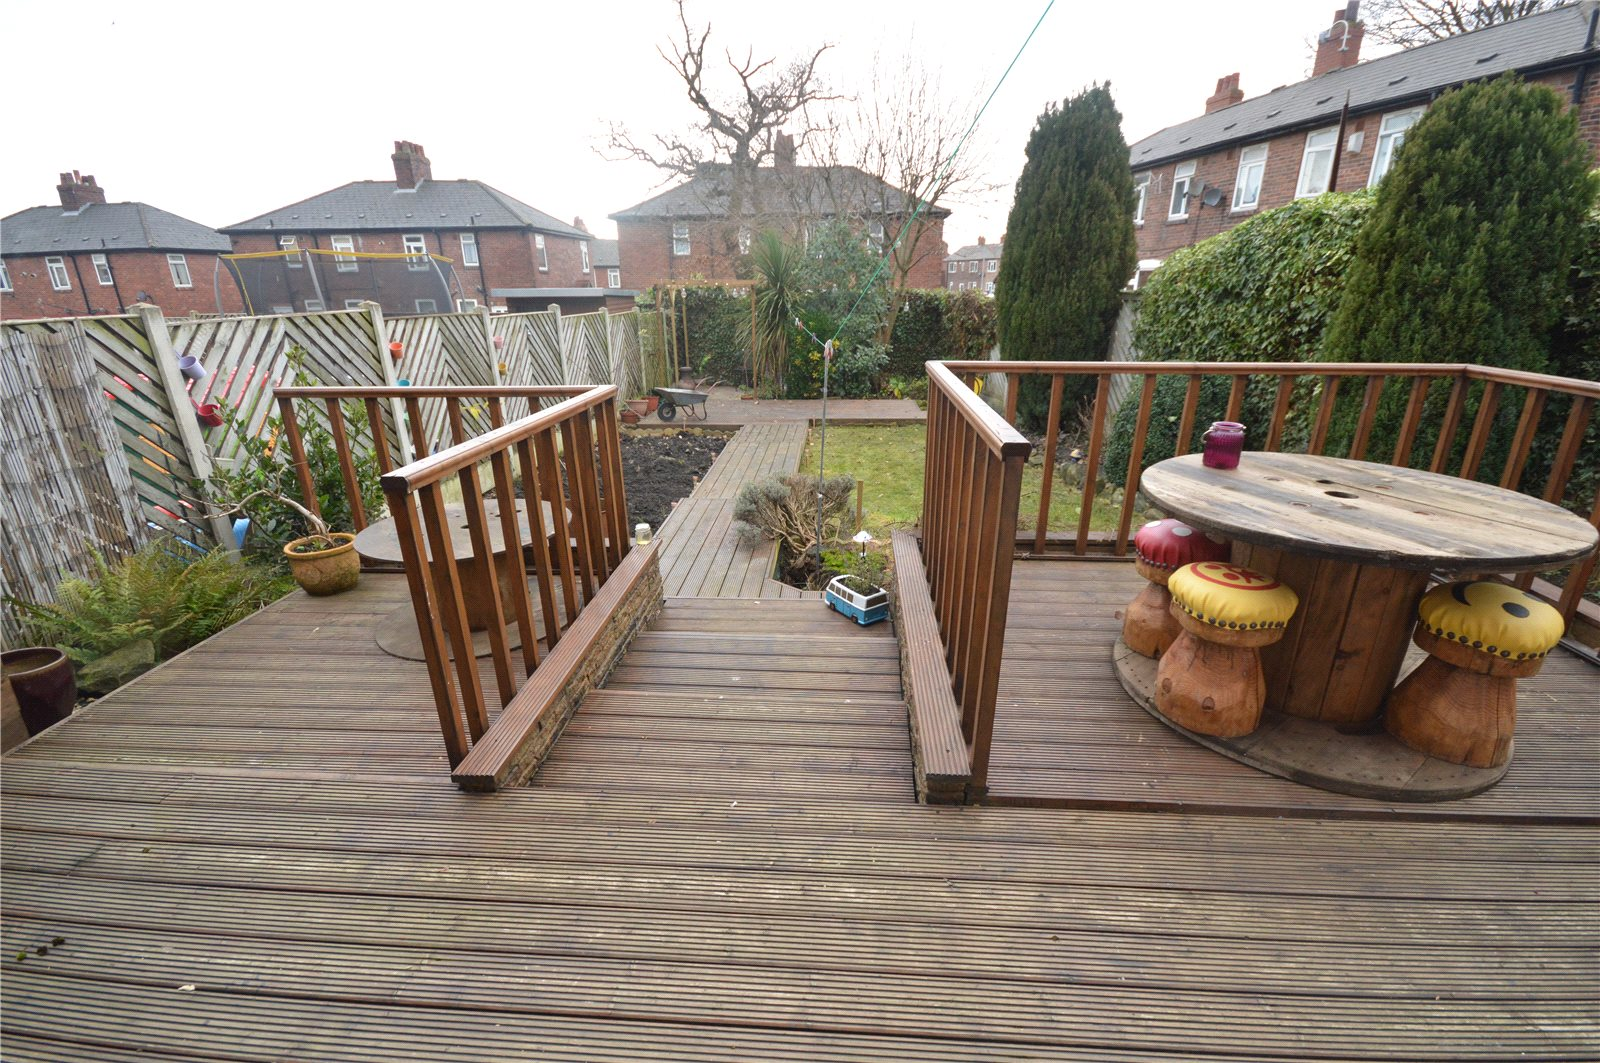 property for sale in Horsforth, exterior decking